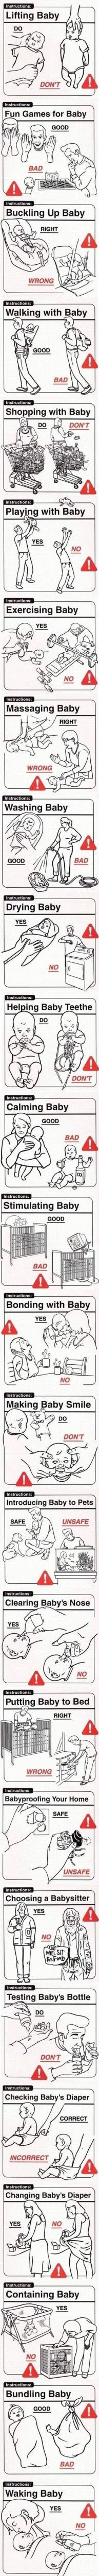 Right and wrong ways on how to treat the baby.  don't care if u have one or not.